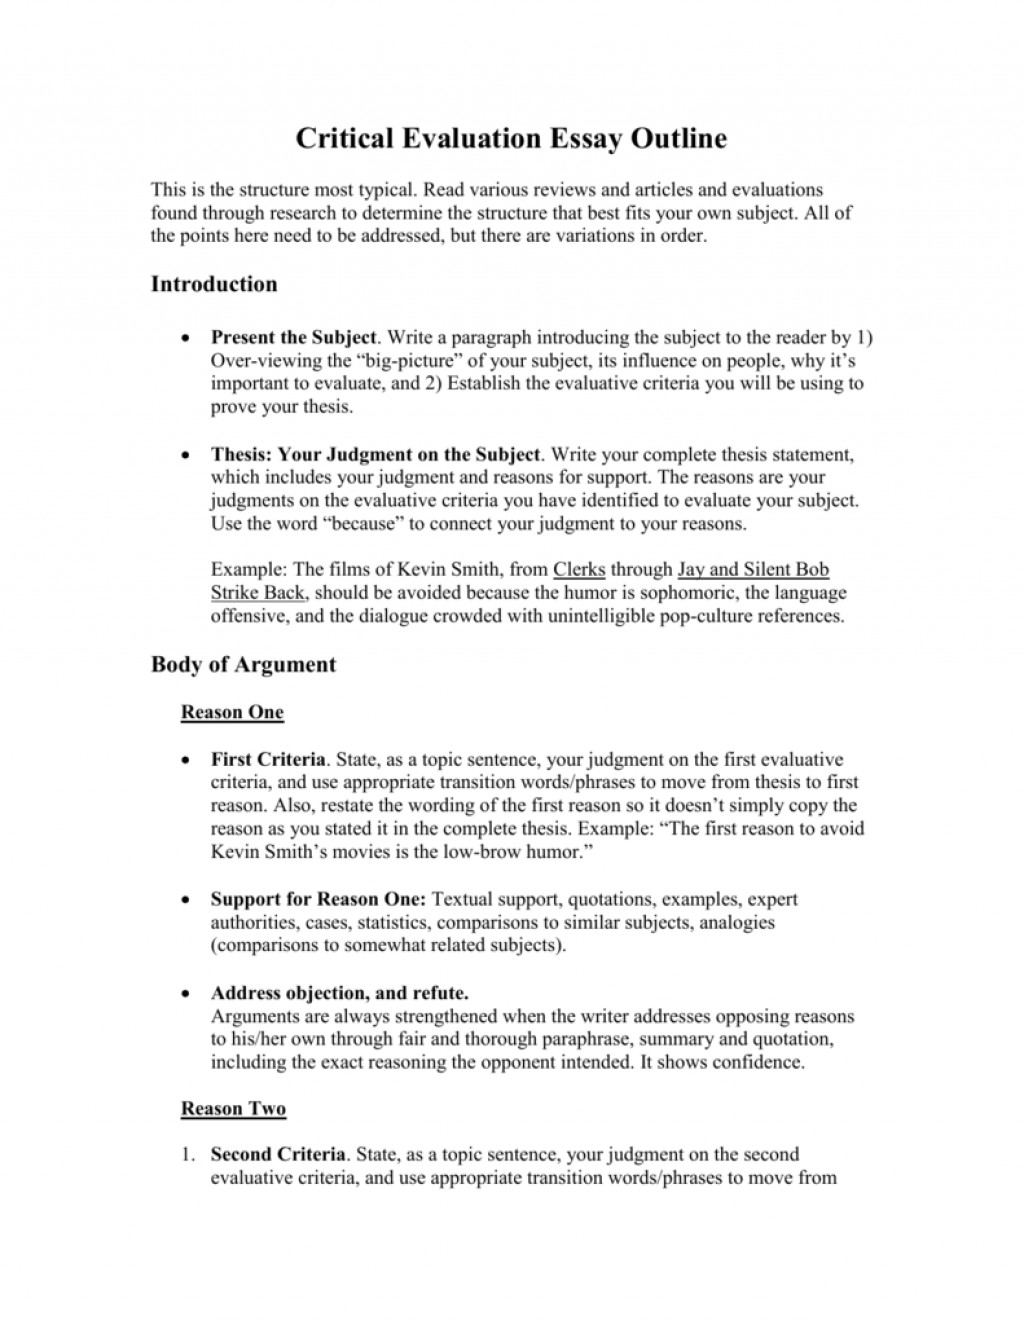 004 Outline Essay 007278317 1 Fascinating About Immigration Tok Structure Definition Large